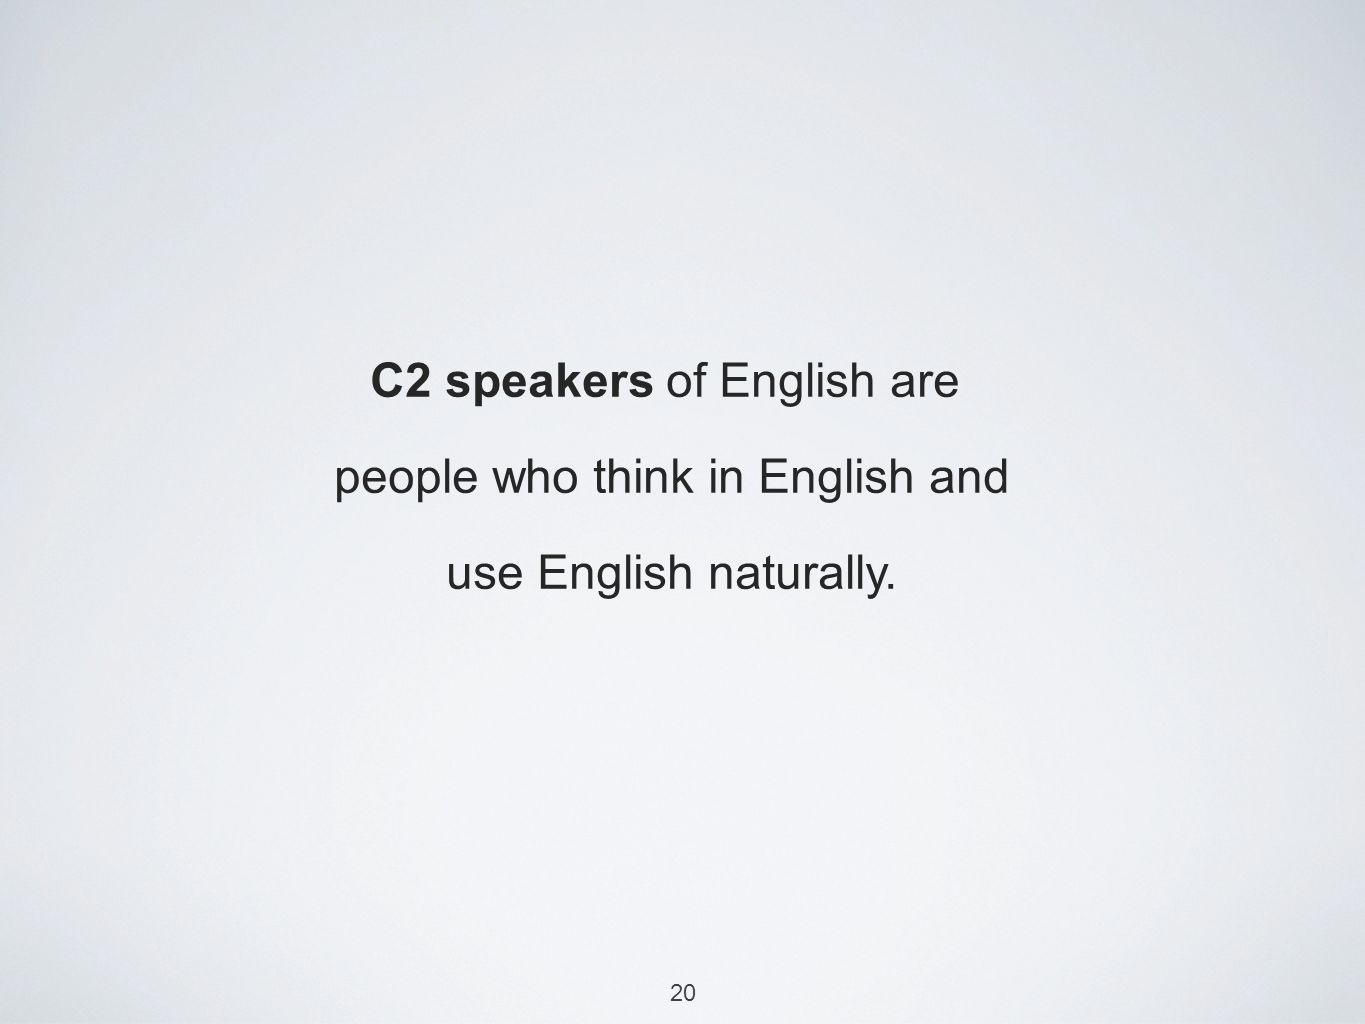 20 C2 speakers of English are people who think in English and use English naturally.